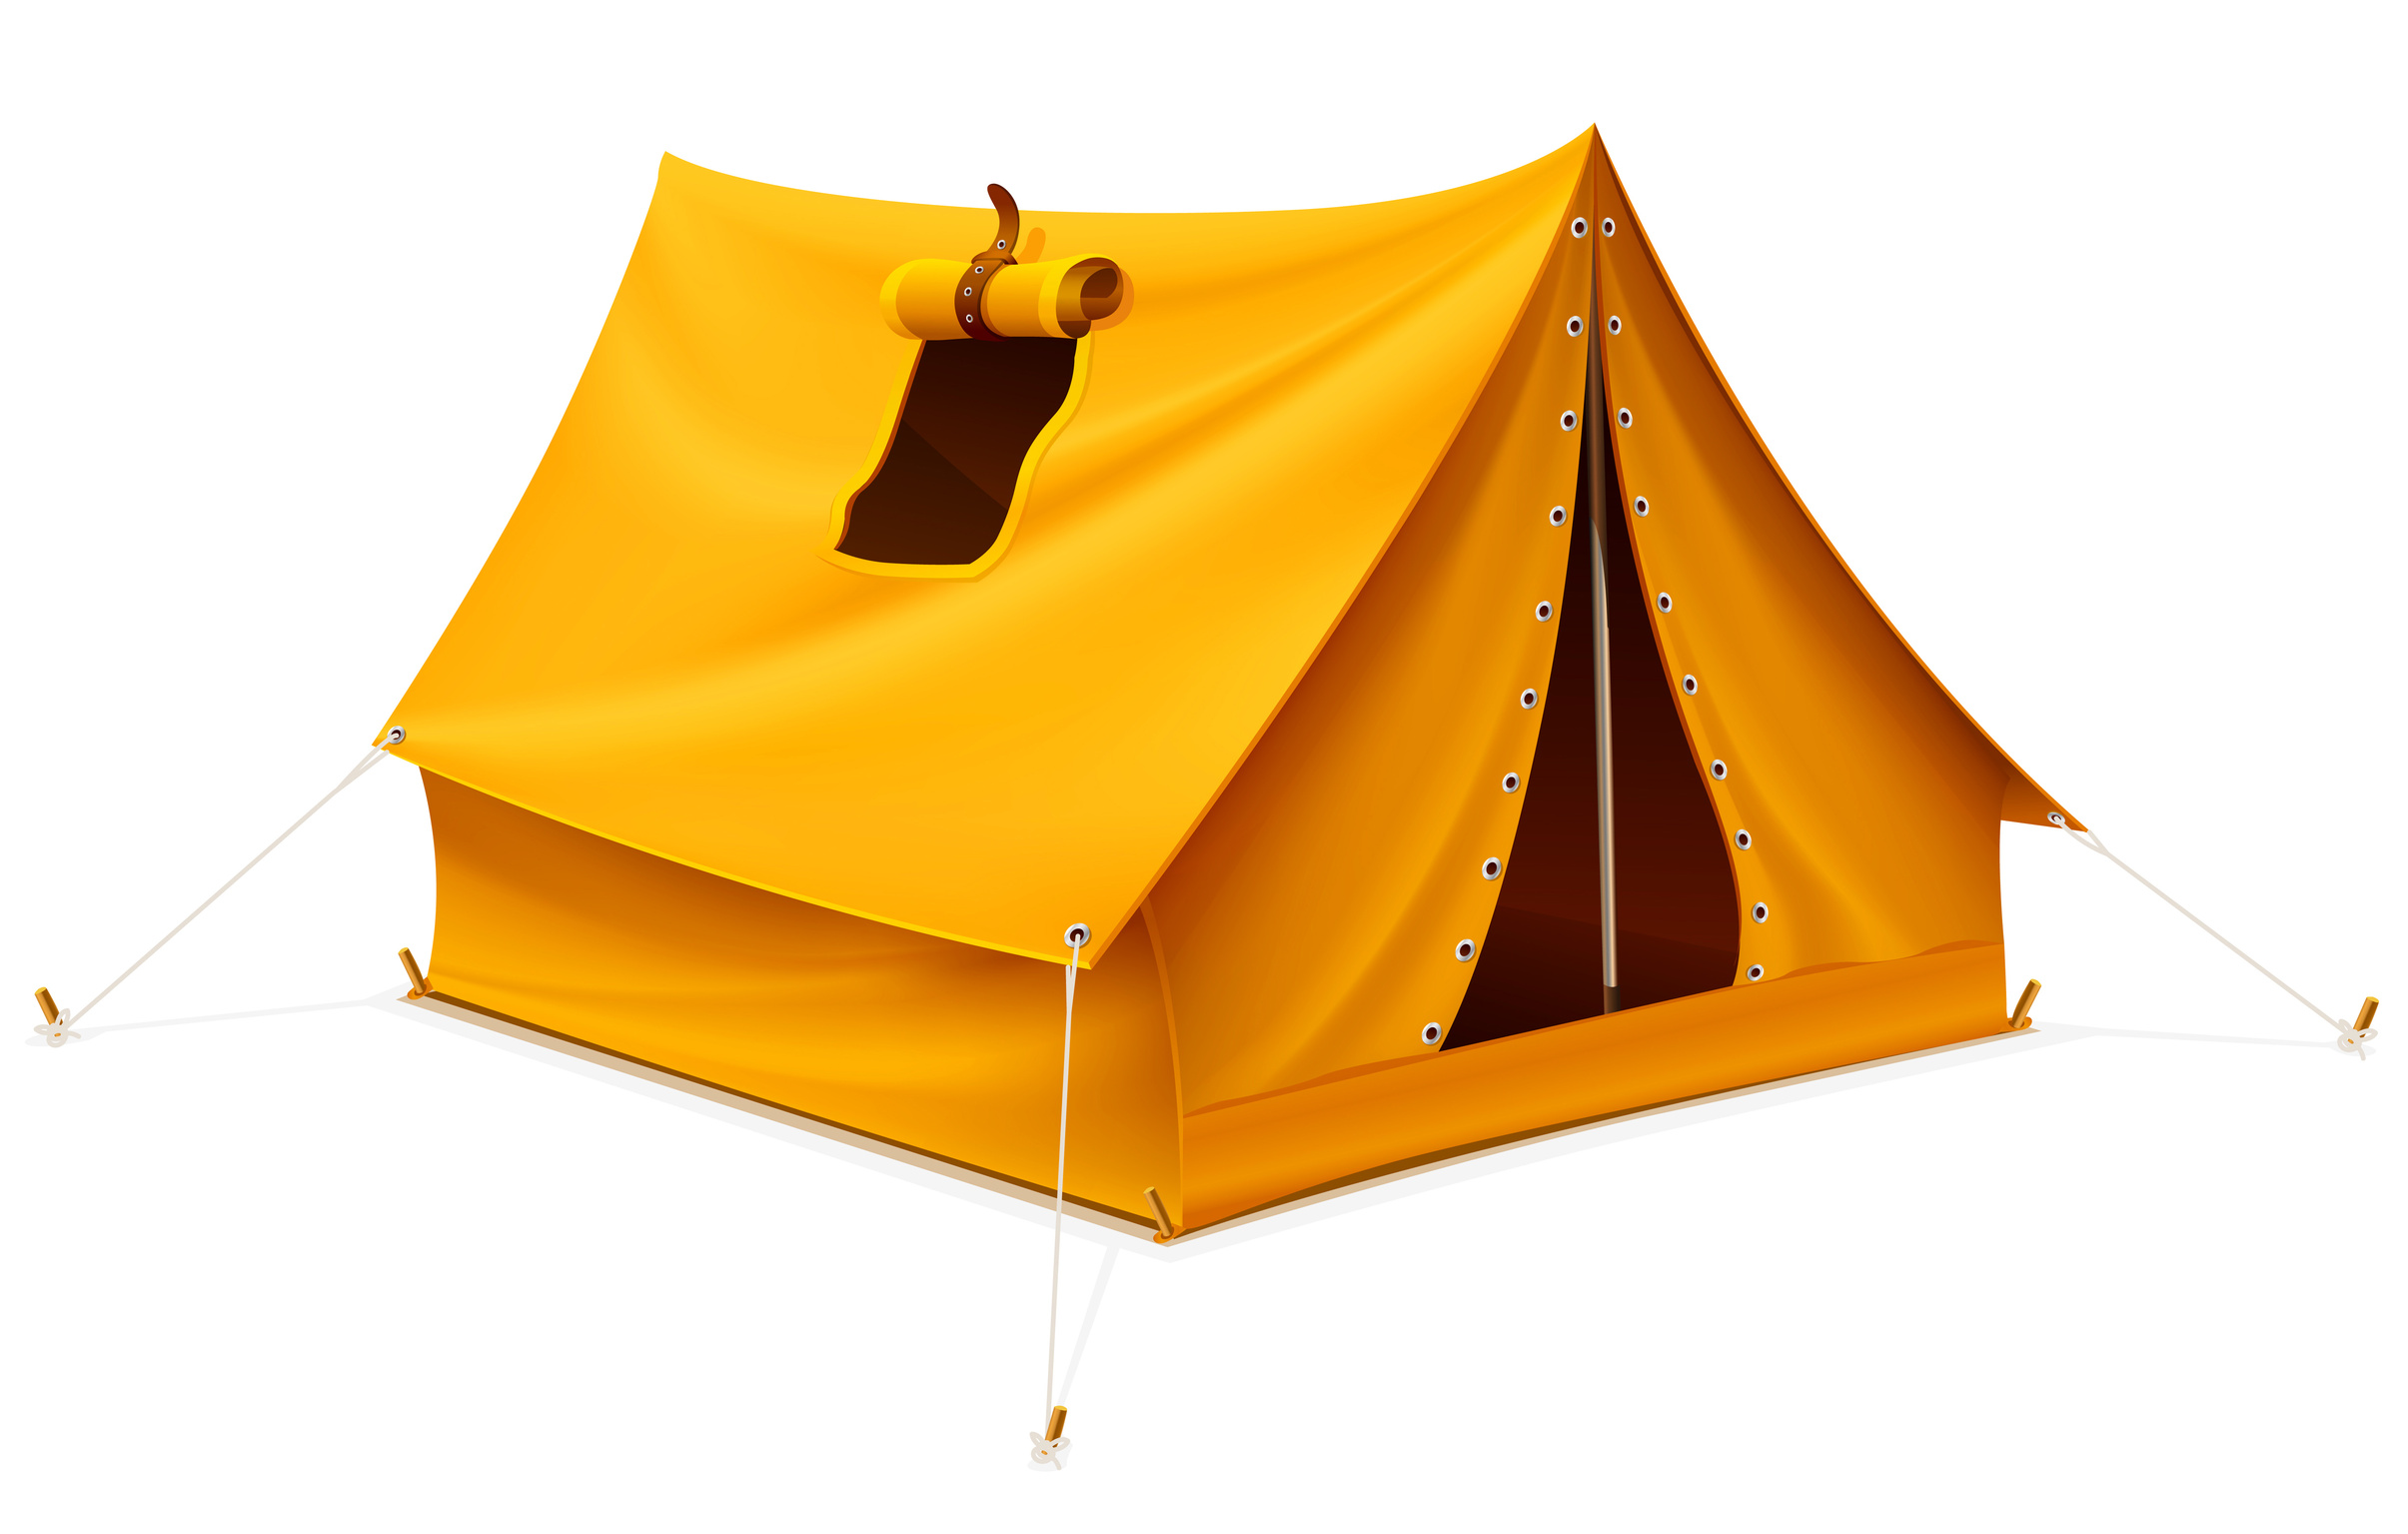 Orange Tent Png image #35658